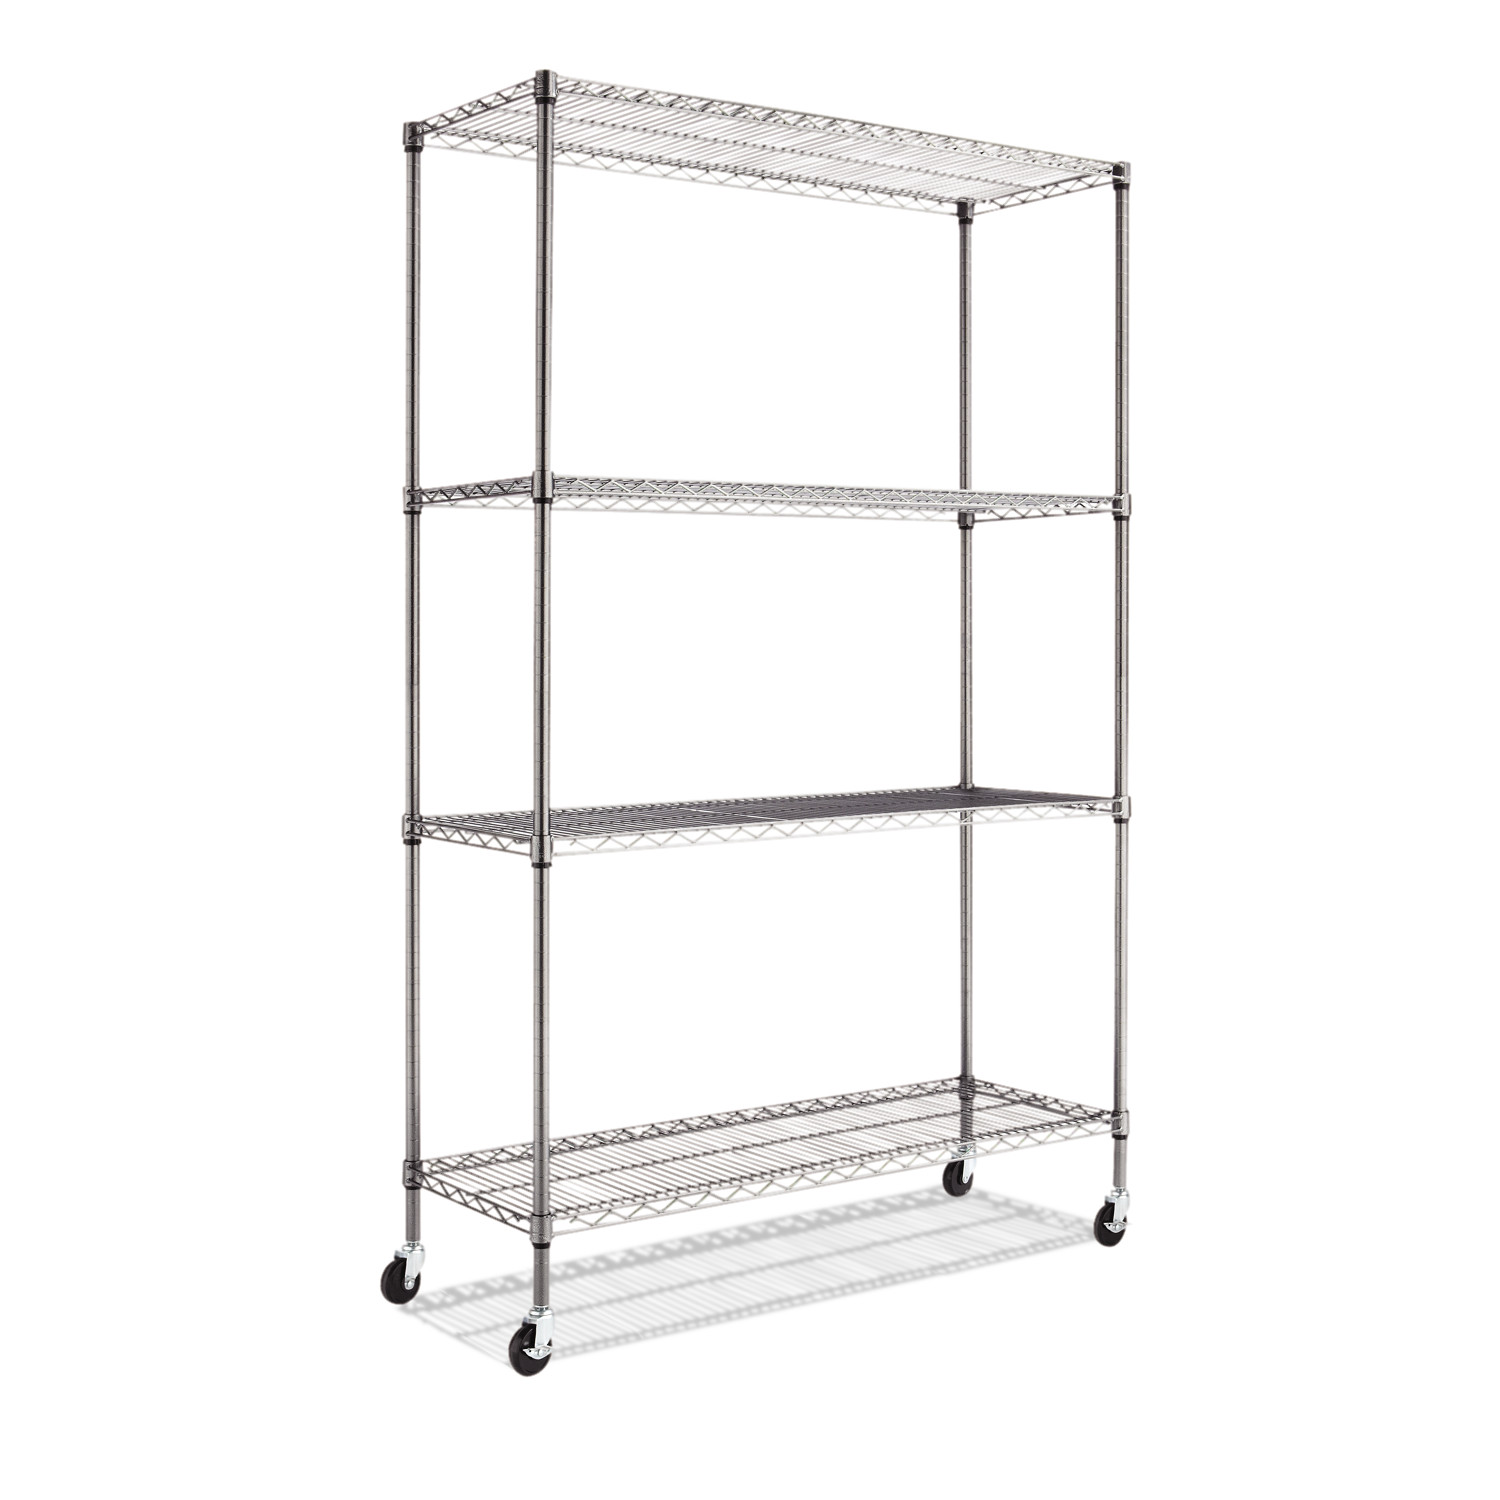 "Alera Complete Wire Shelving Unit with Casters, Four-Shelf, 48"" x 18"" x 72"", Black Anthracite"